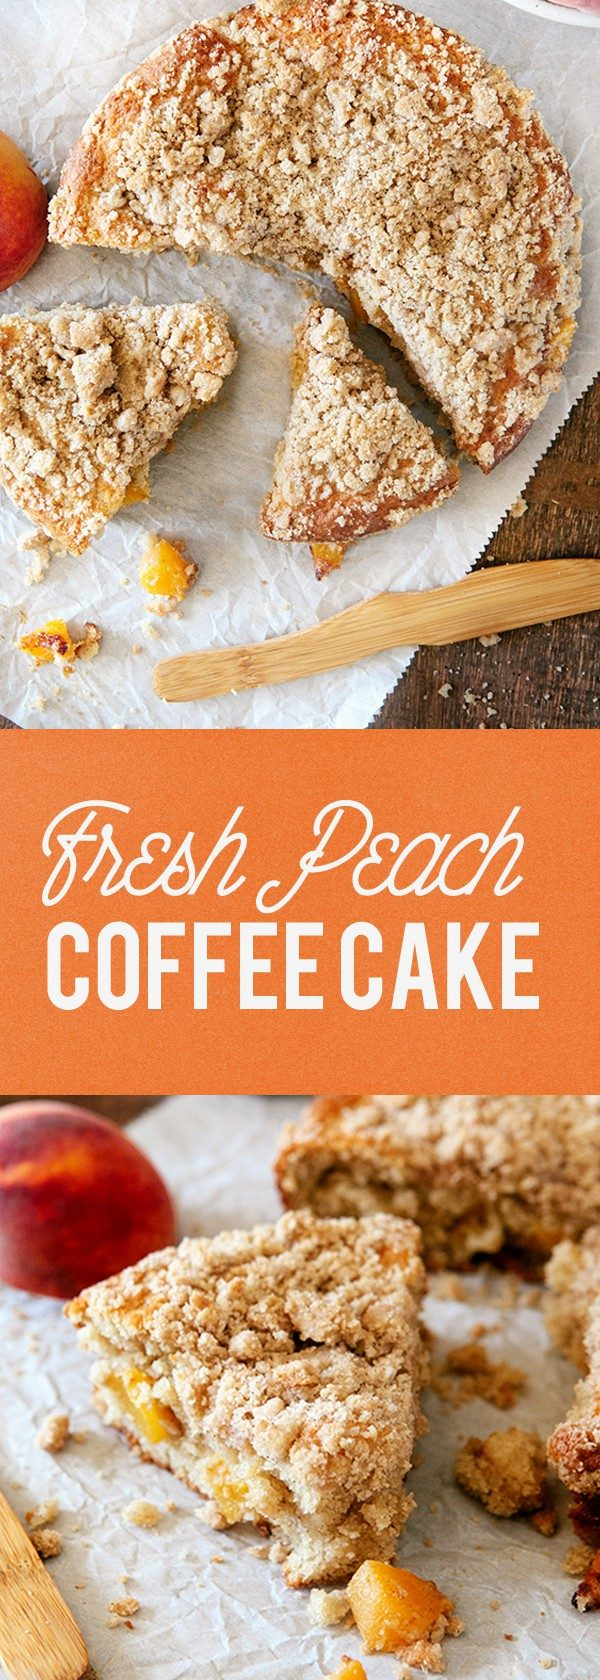 This Fresh Peach Coffee Cake is the perfect way to show off the season's juiciest peaches. The perfect companion to your afternoon tea!